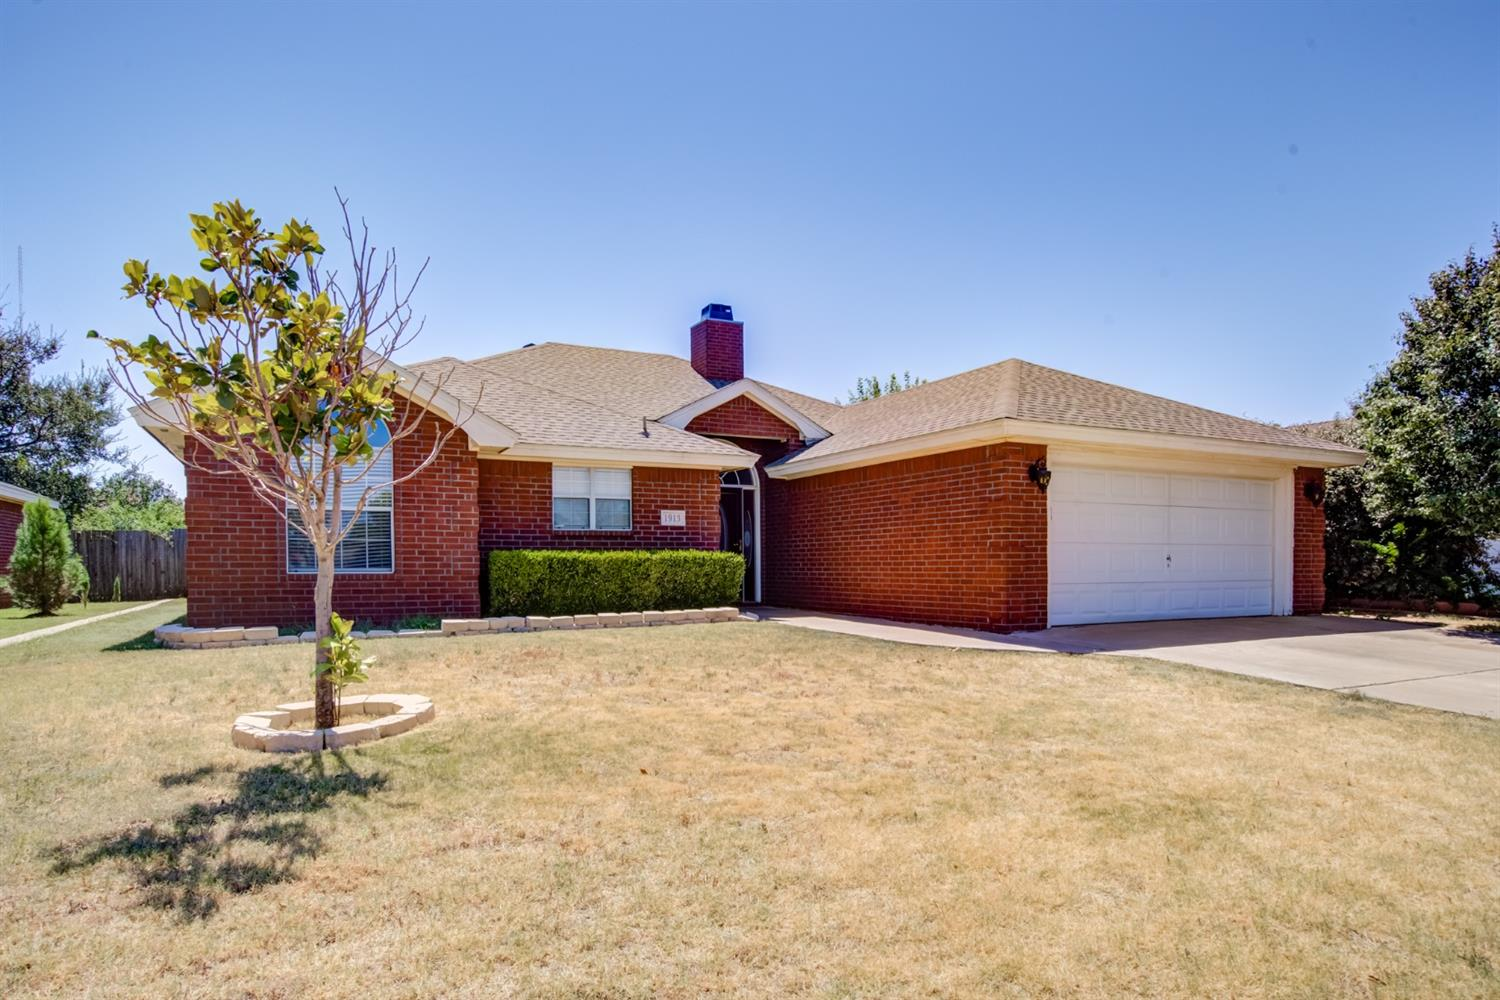 1913 76th Street, Lubbock in Lubbock County, TX 79423 Home for Sale